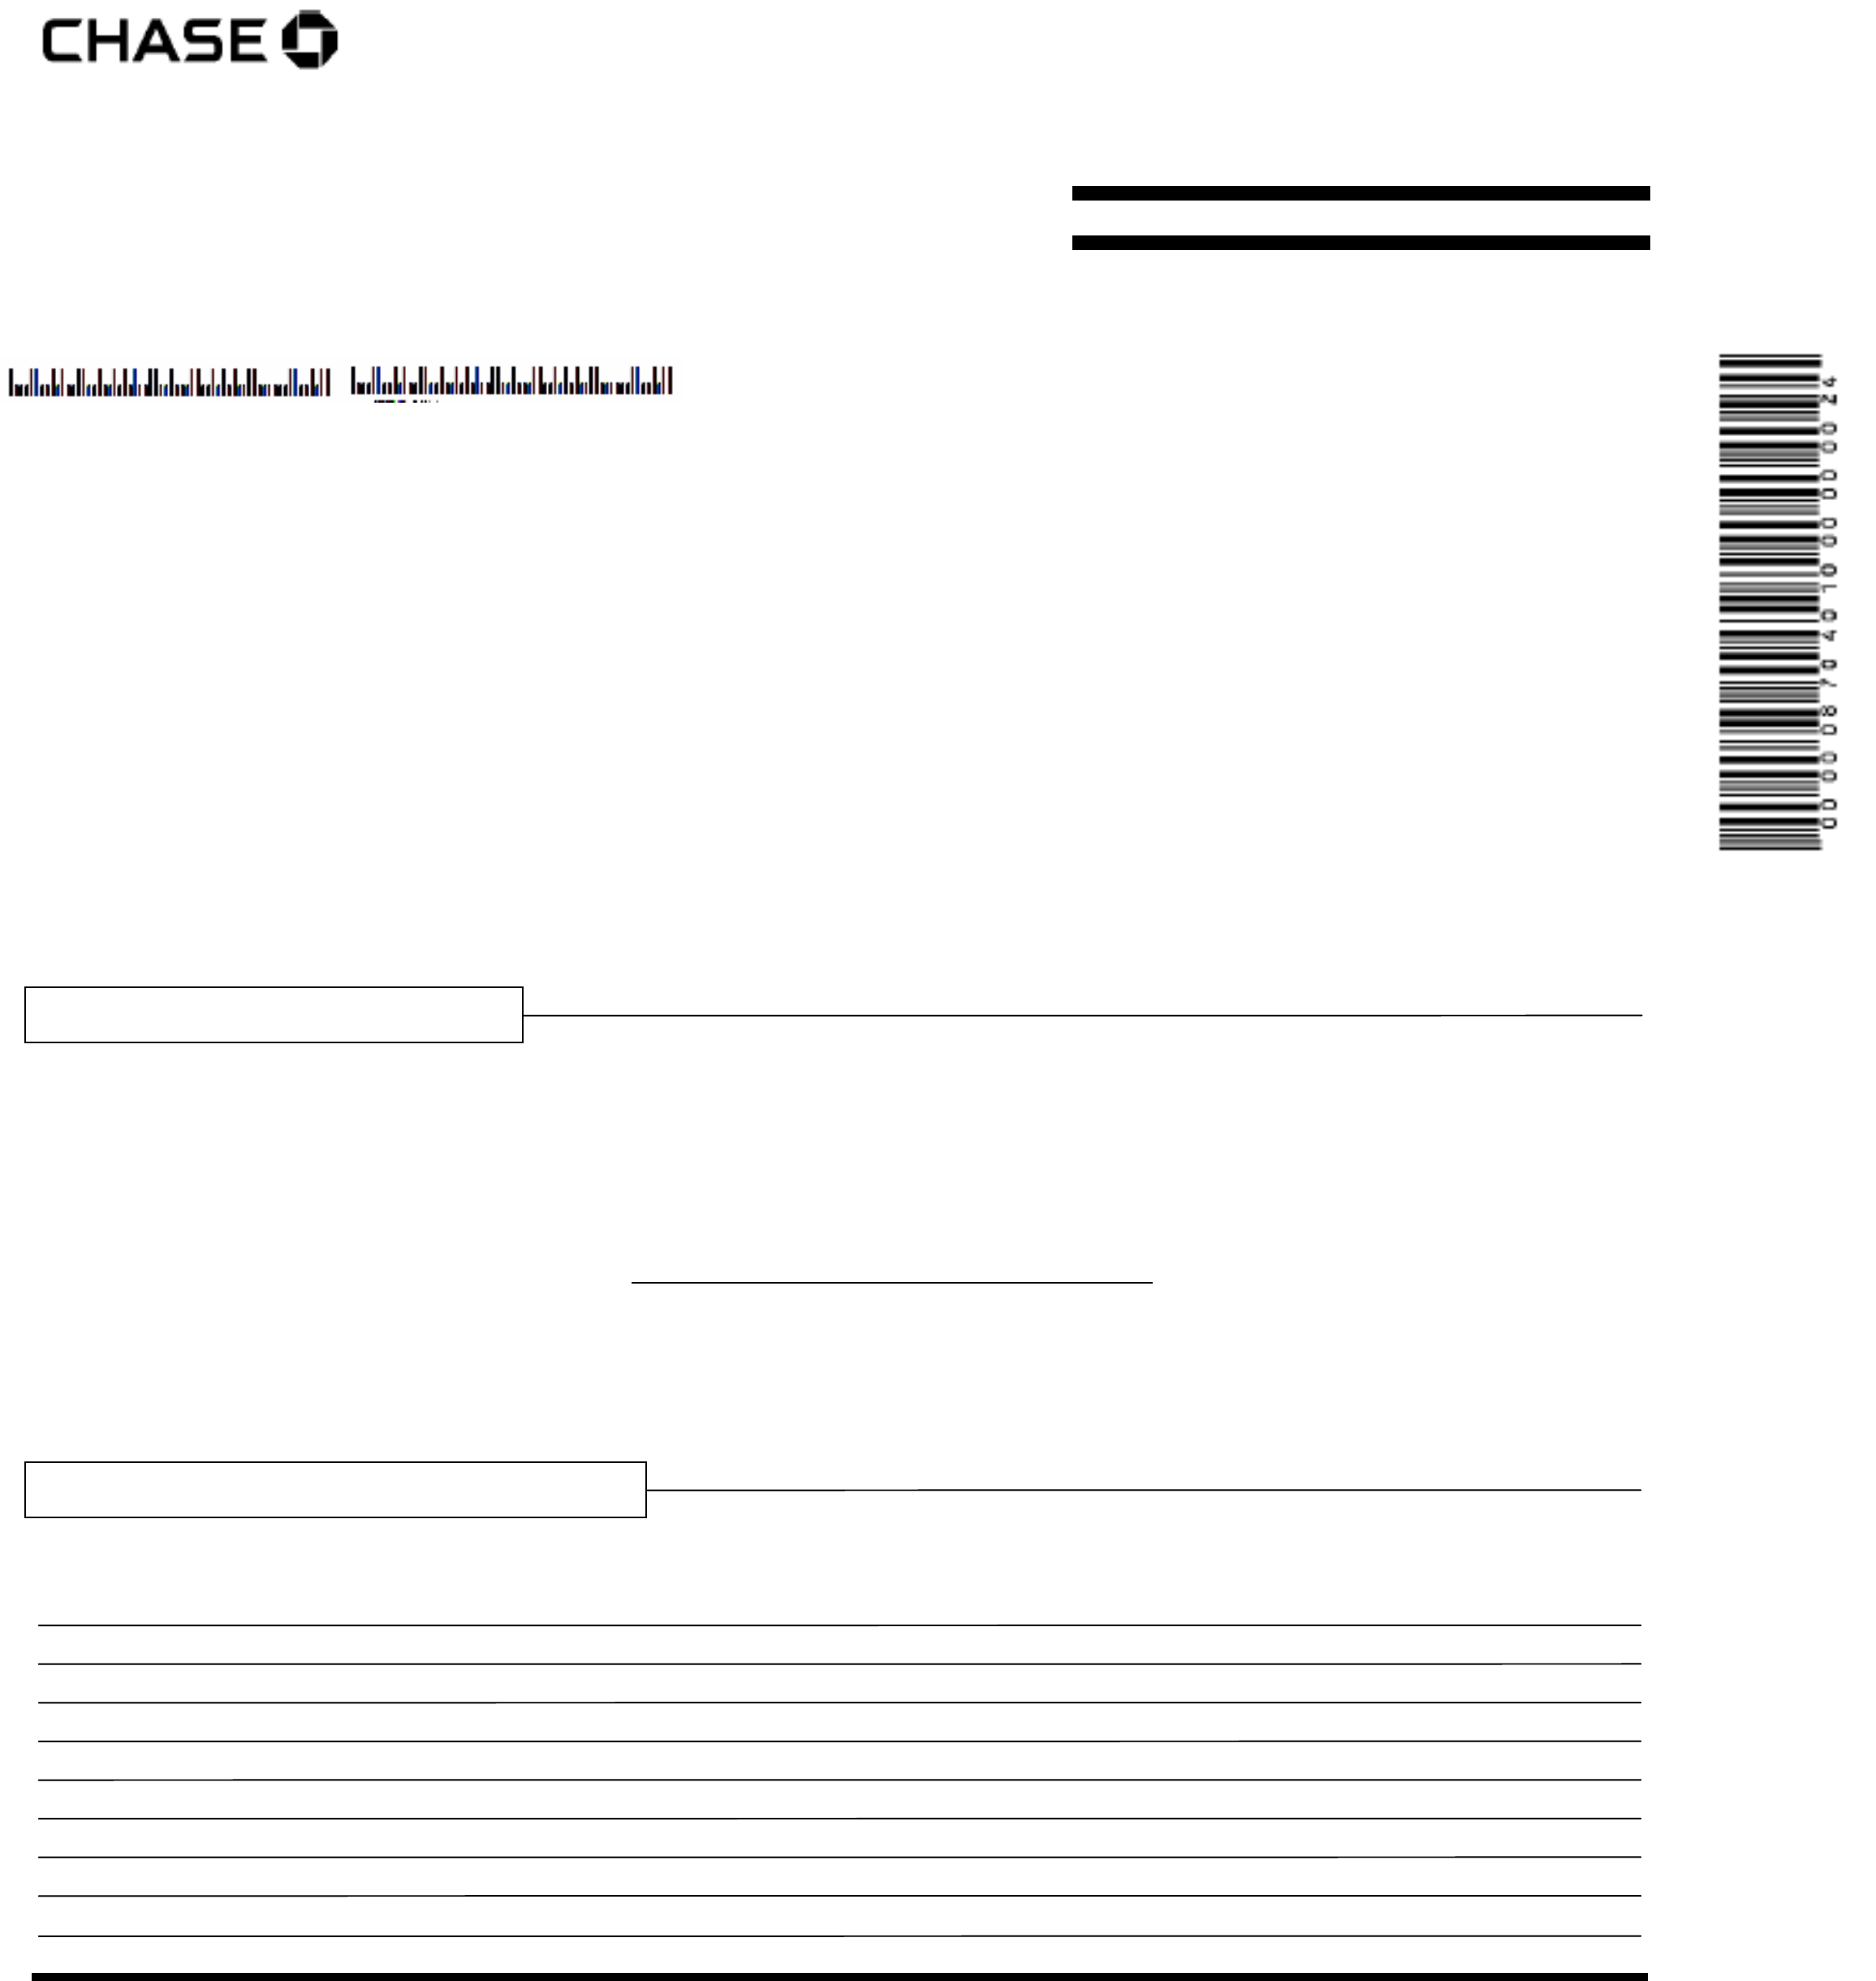 Sample bank statement free download for Blank bank statement template download